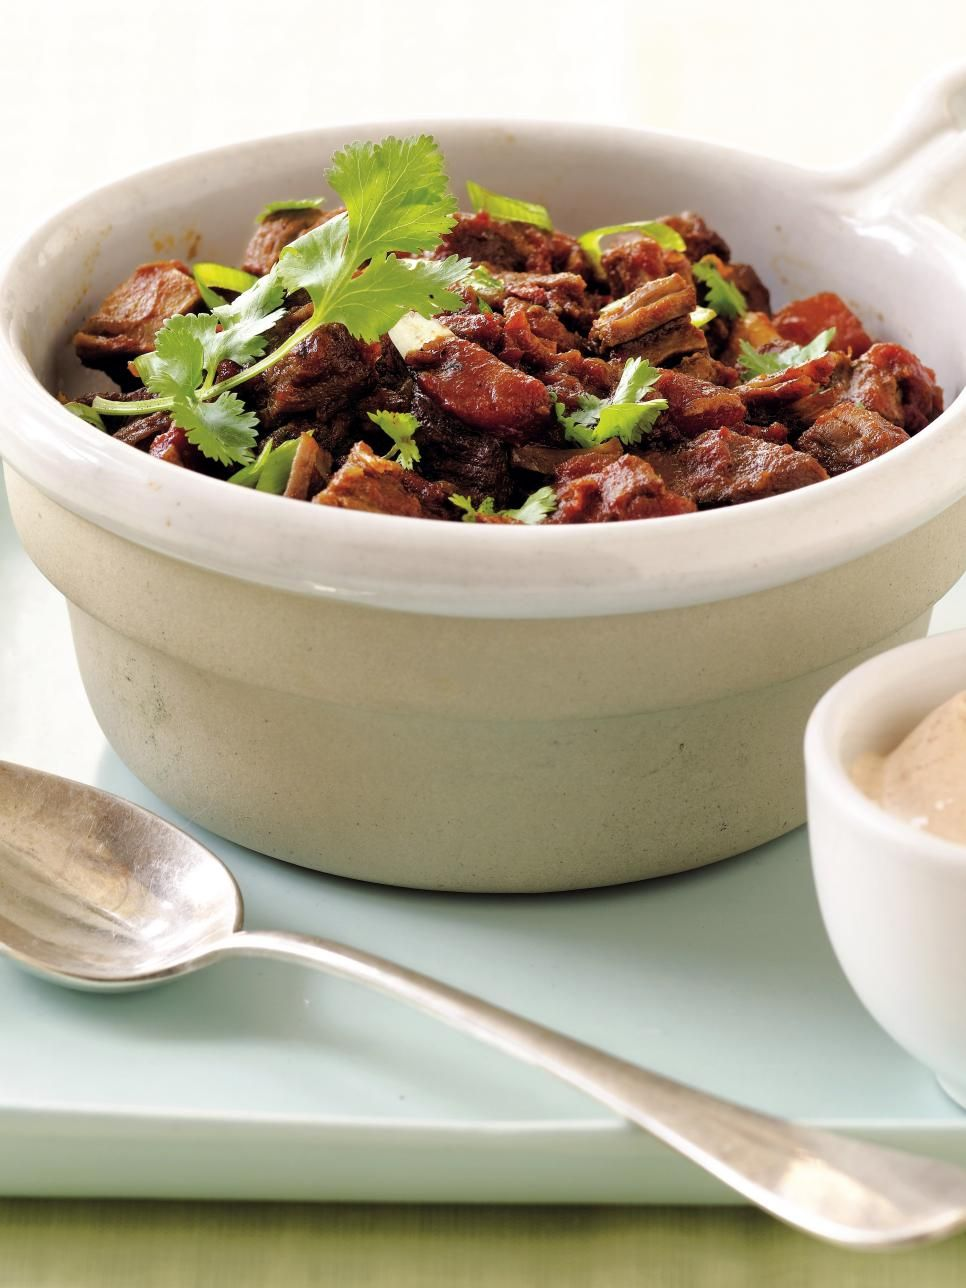 Easy Slow Cooker Recipes Food Network Tender Meat Stew And